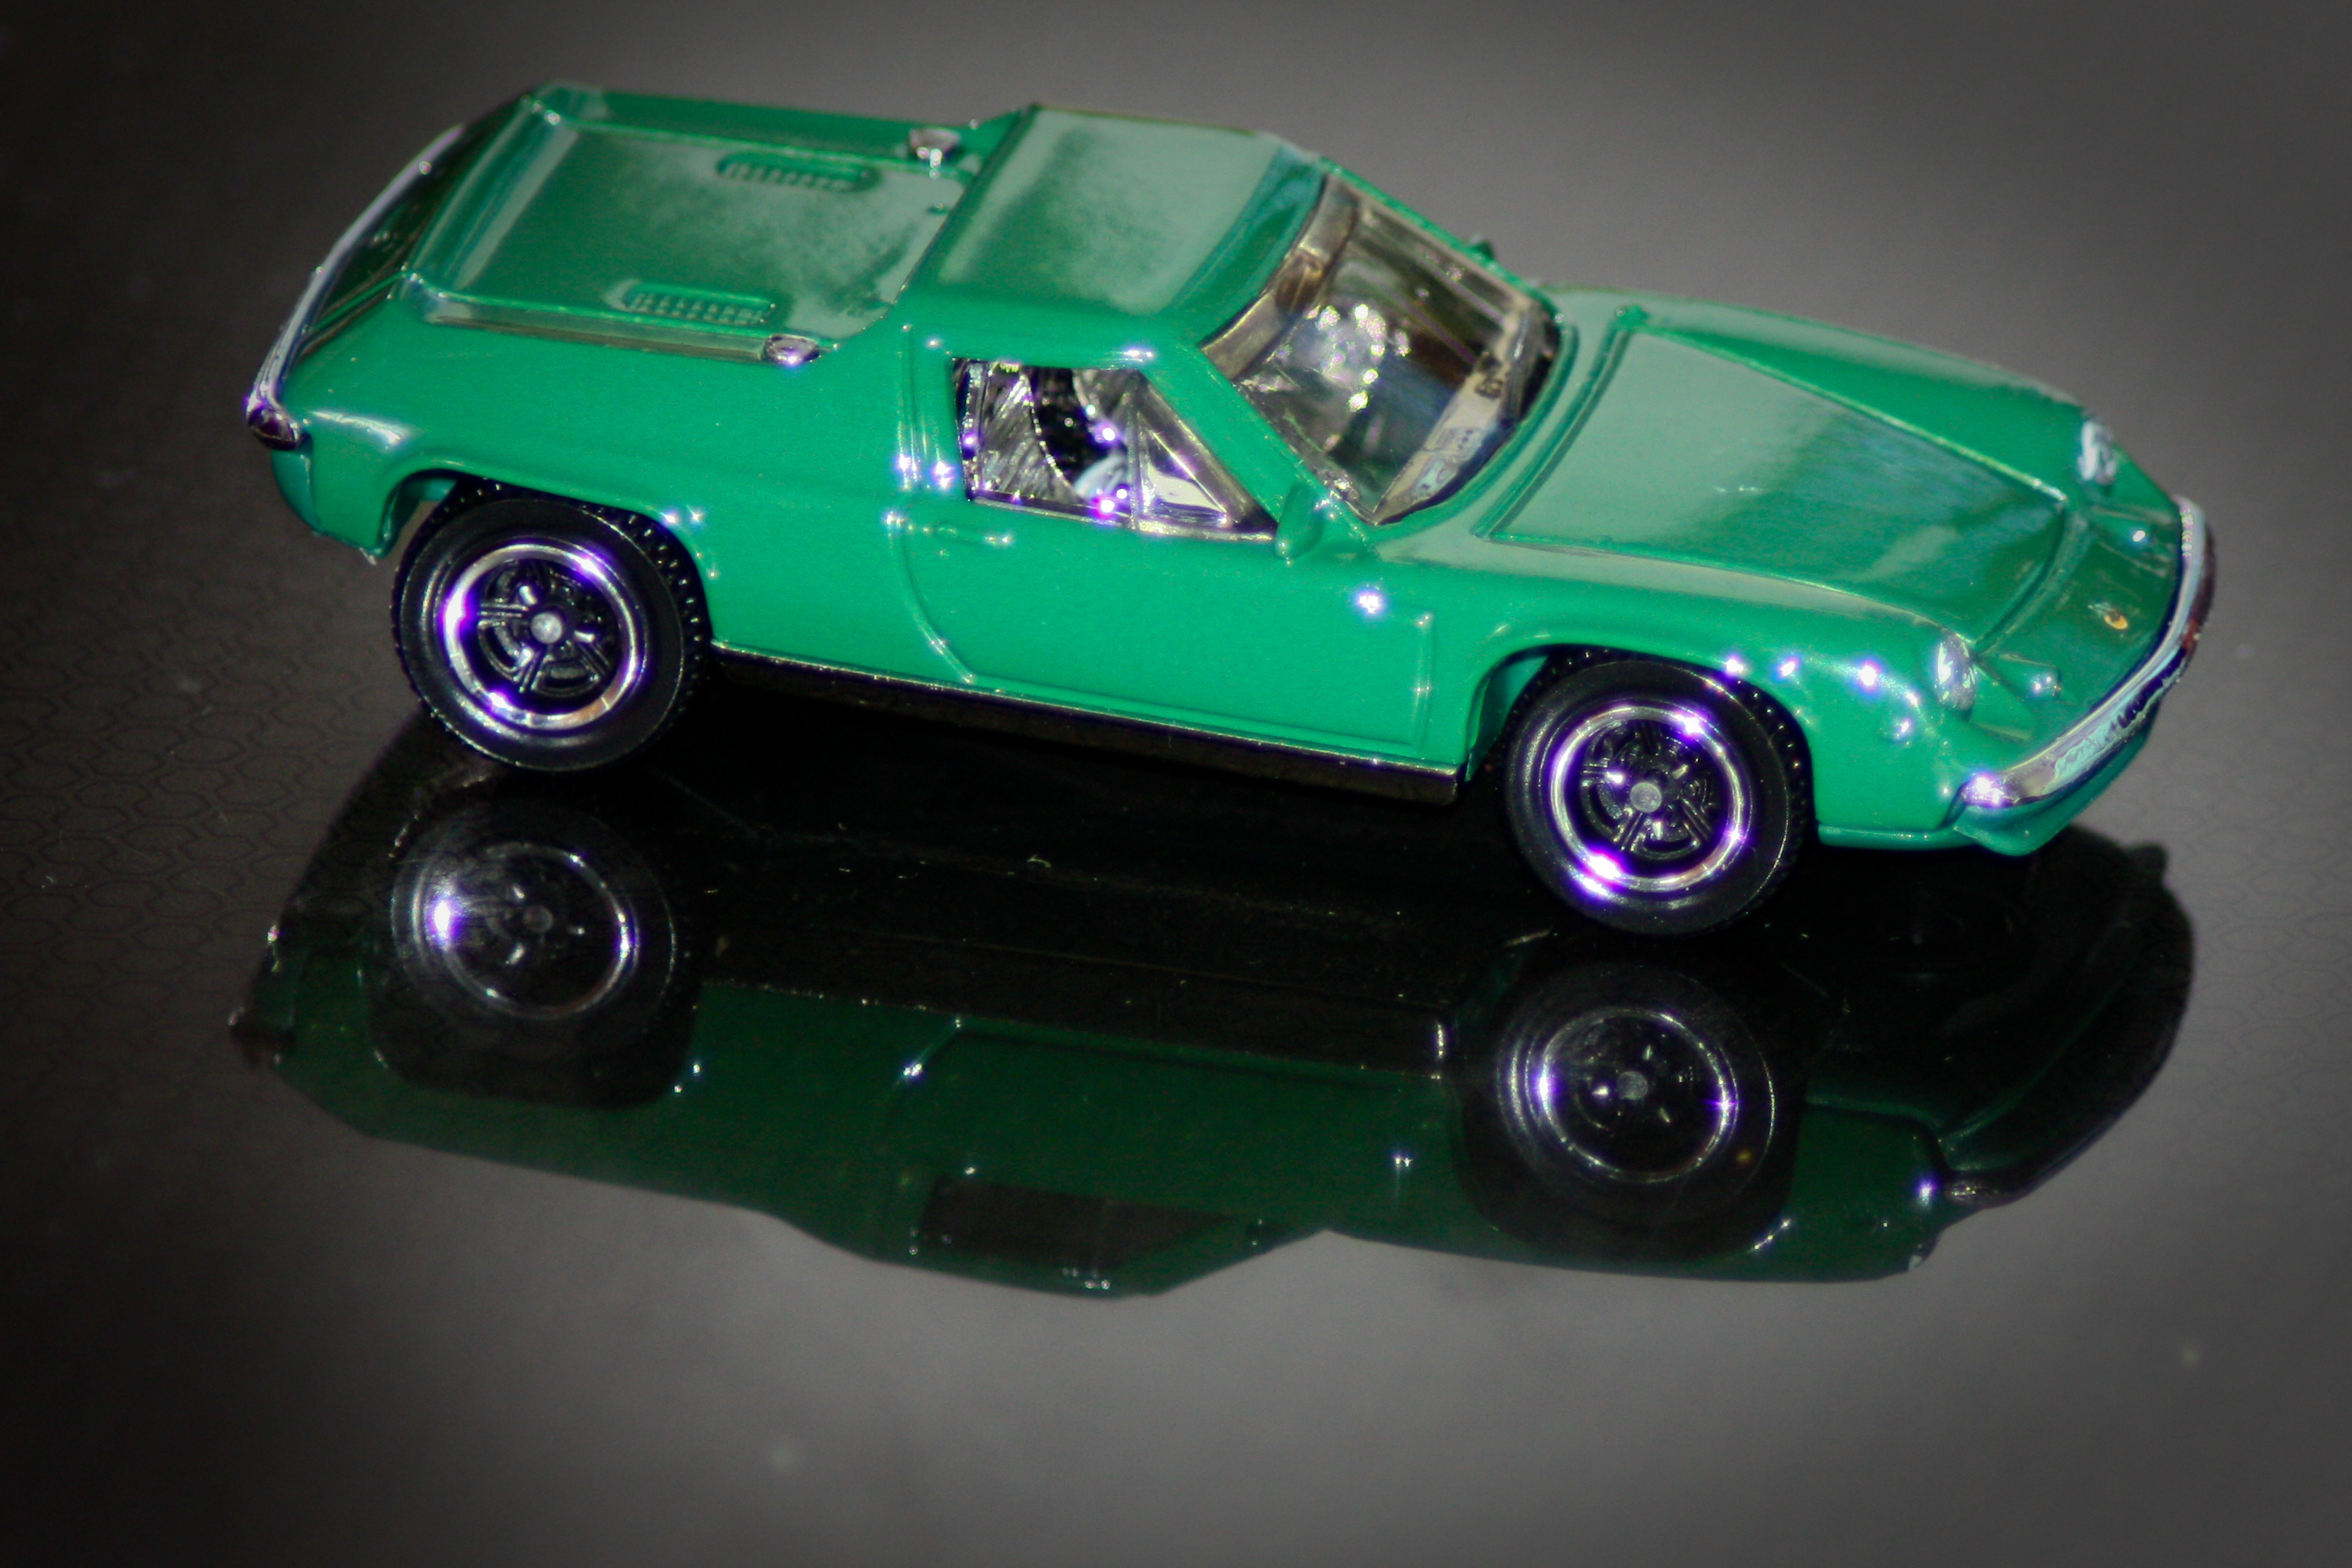 Matchbox #761 Lotus Europa Special-1972 | Flickr - Photo Sharing!